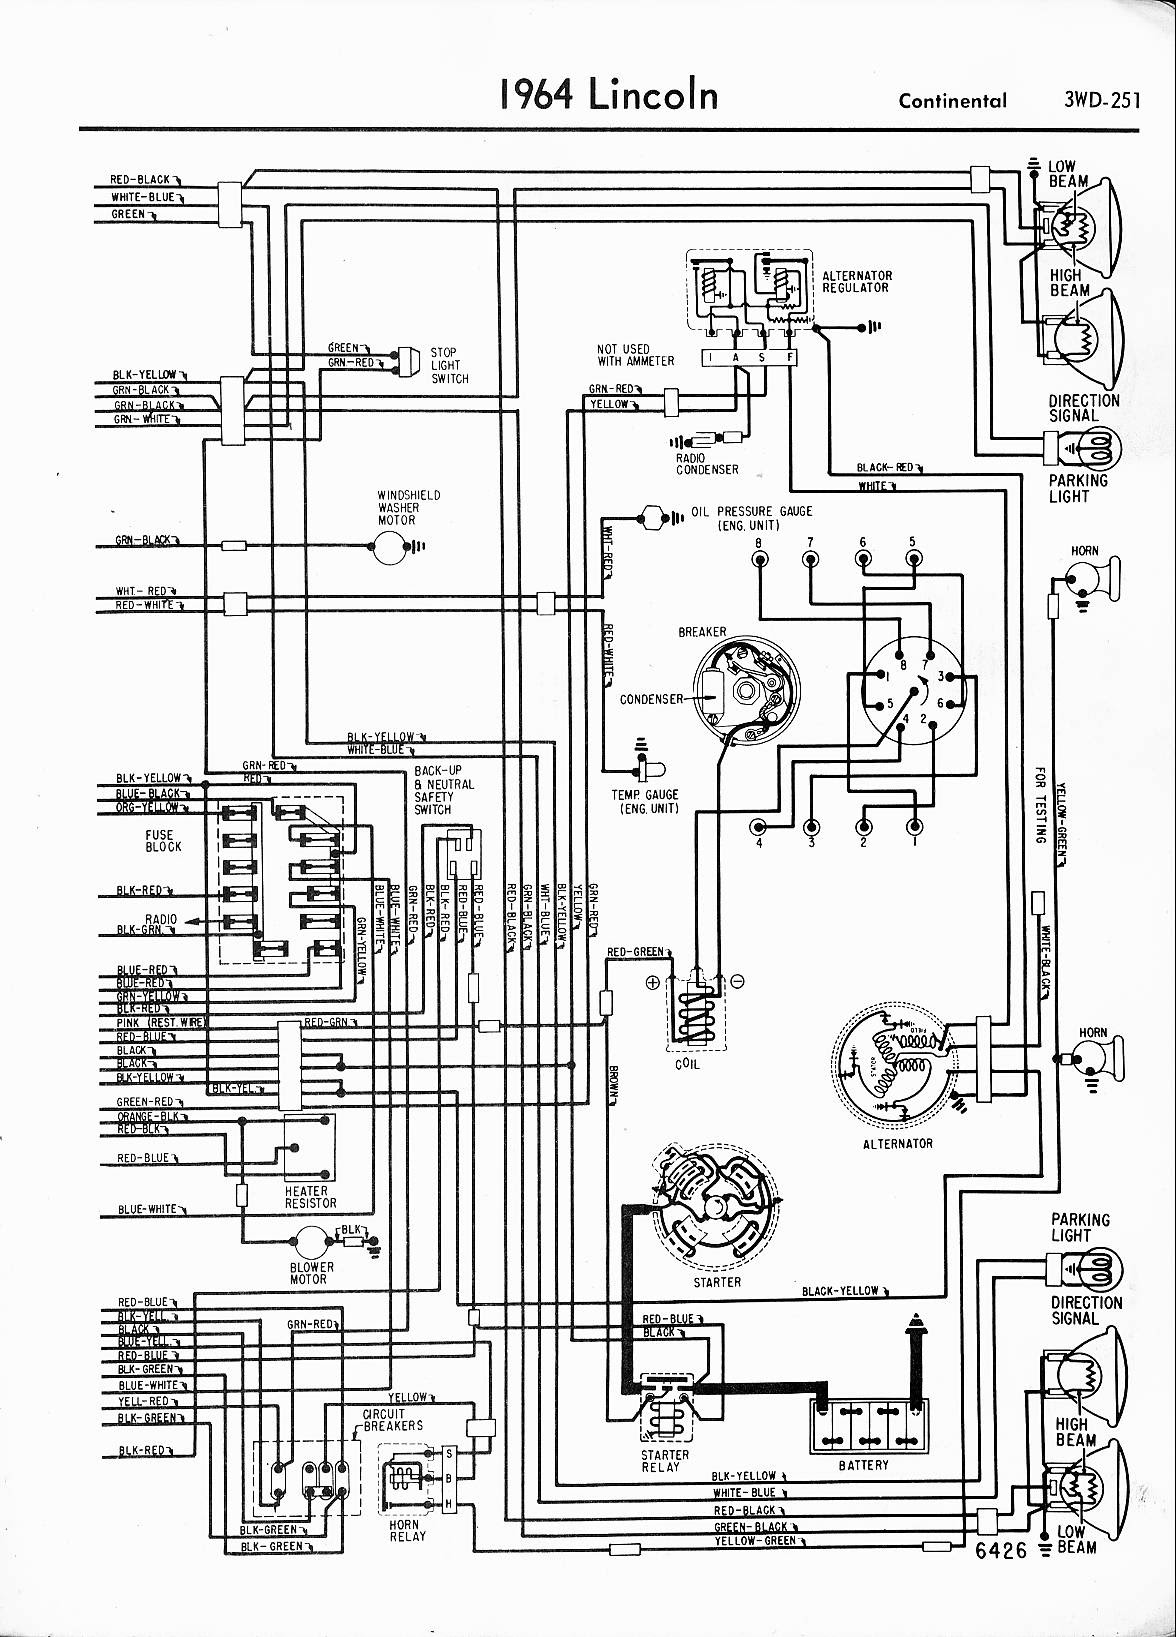 1995 Lincoln Town Car Radio Wiring Diagram Free Wiring Diagram